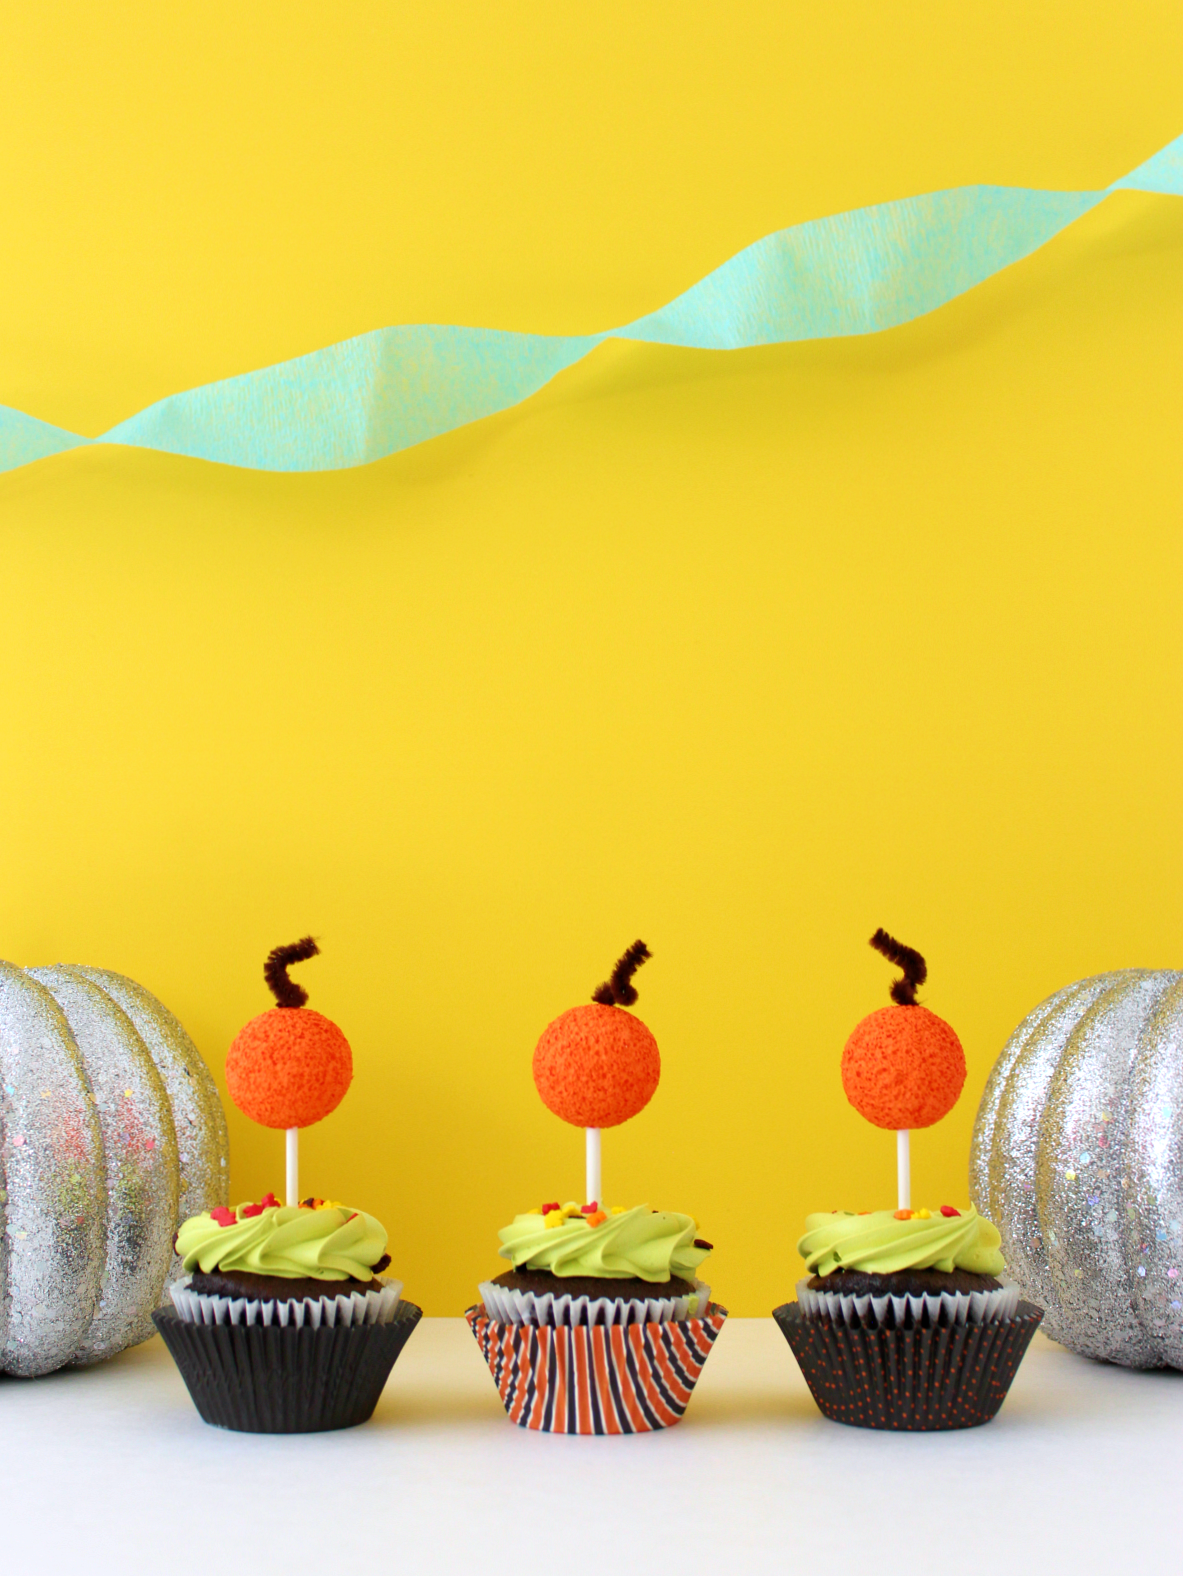 DIY FOAM BALL PUMPKIN CUPCAKE TOPPERS